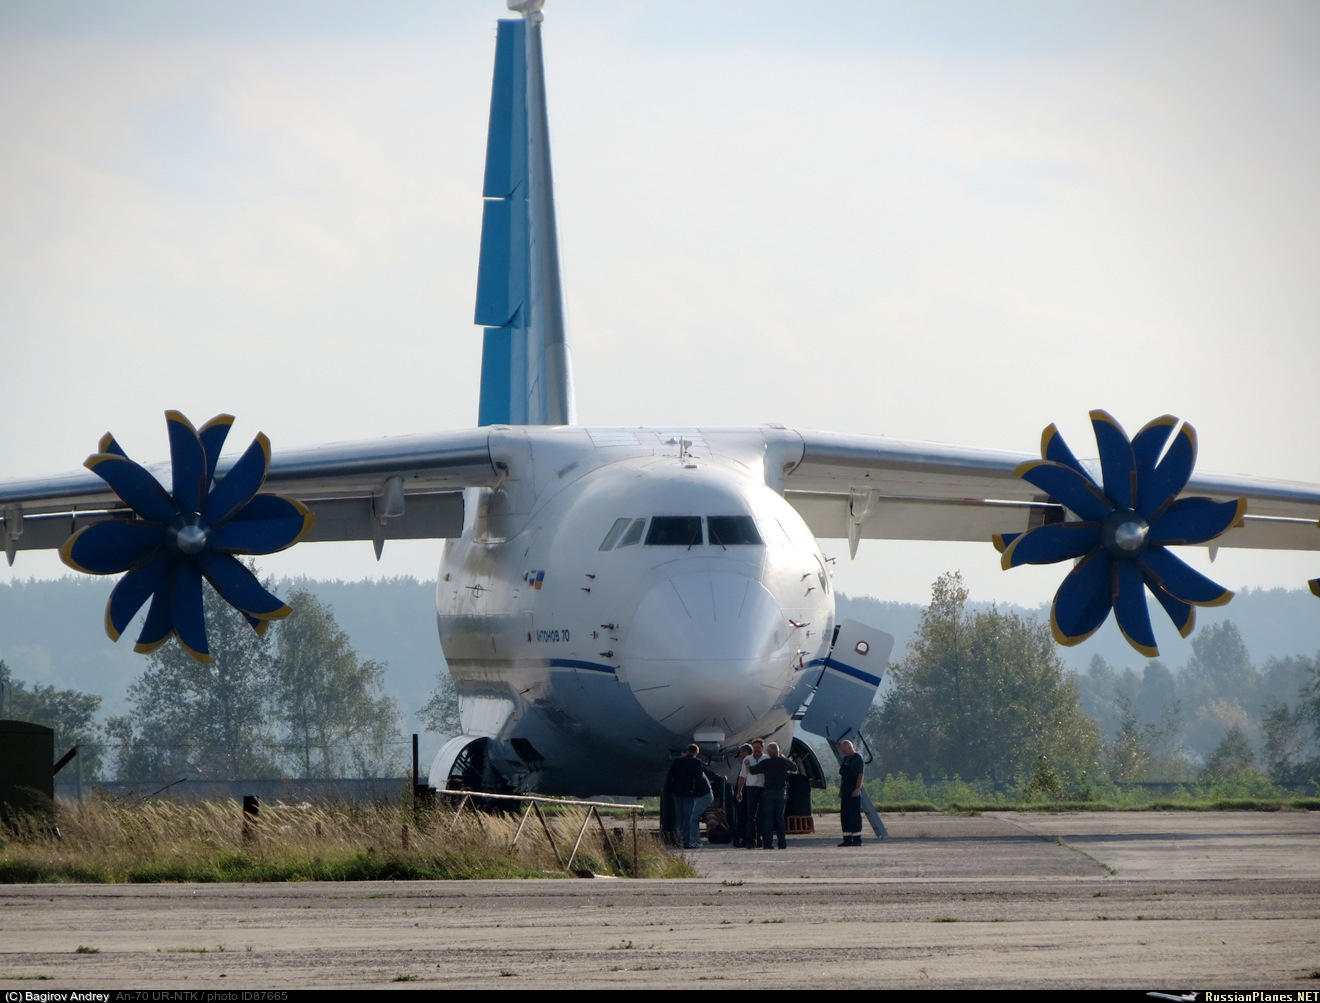 http://russianplanes.net/images/to88000/087665.jpg